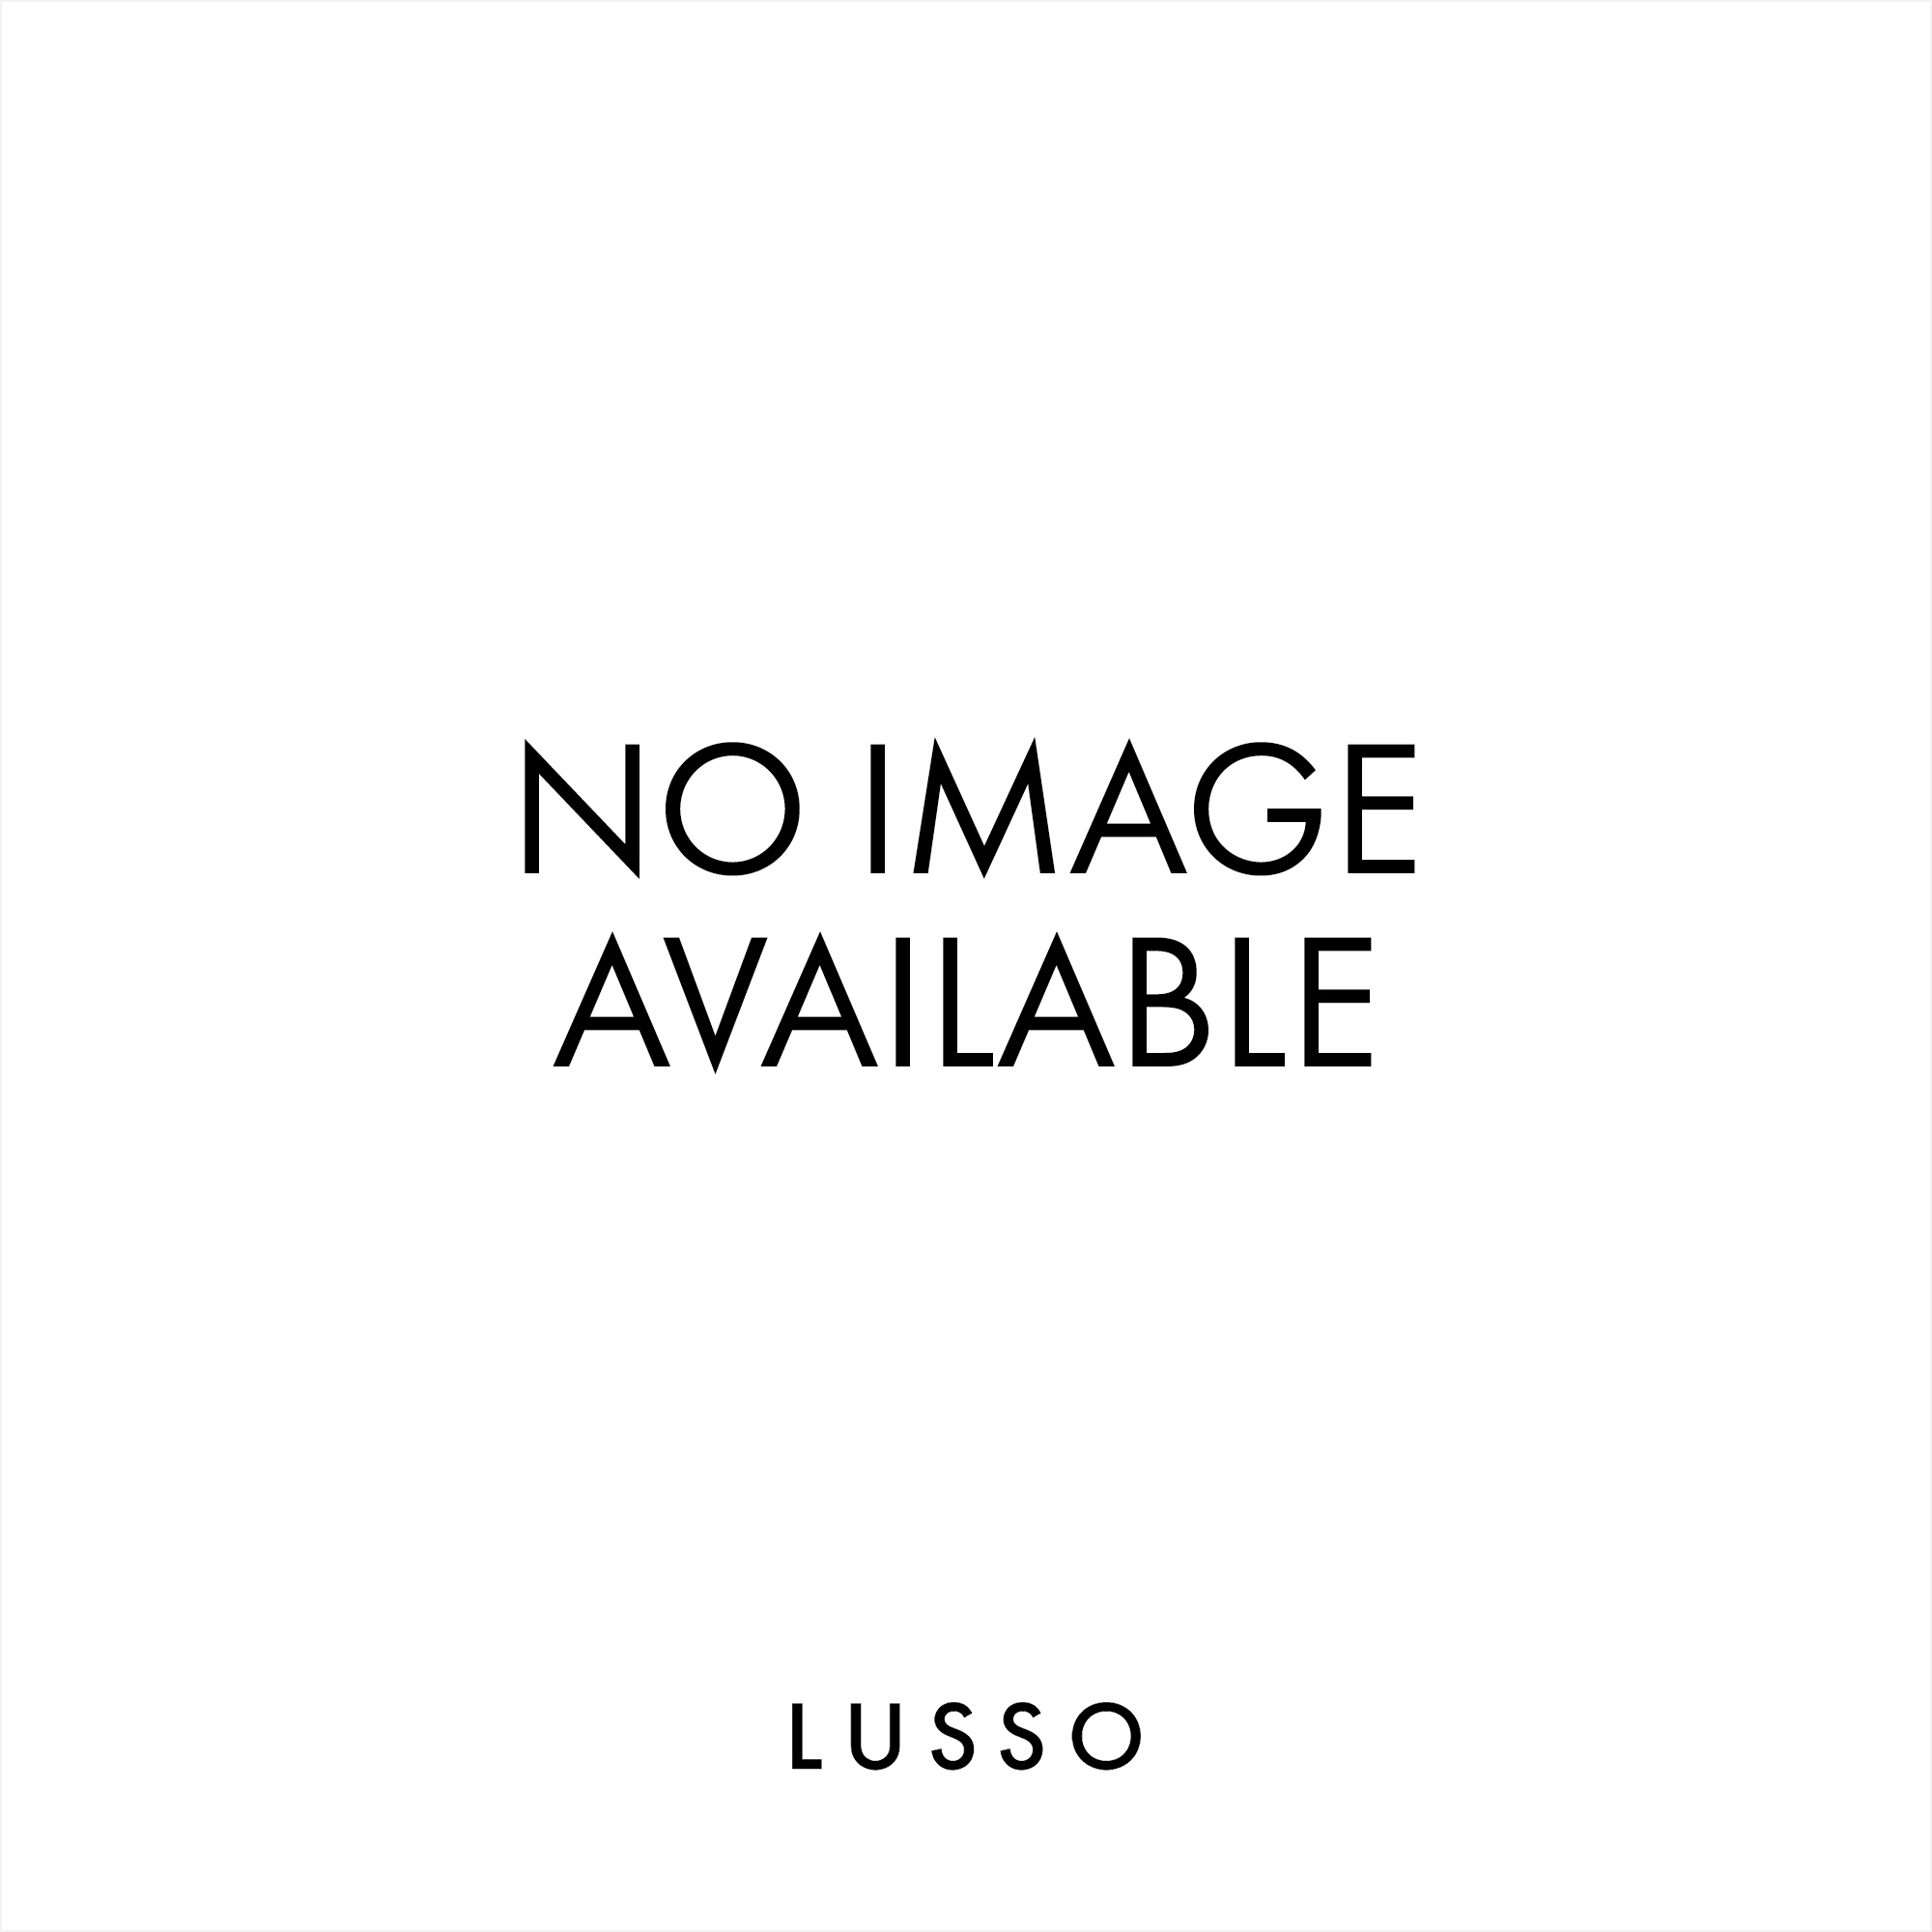 Lusso Stone Solid surface stone resin mirror matte finish 500 square